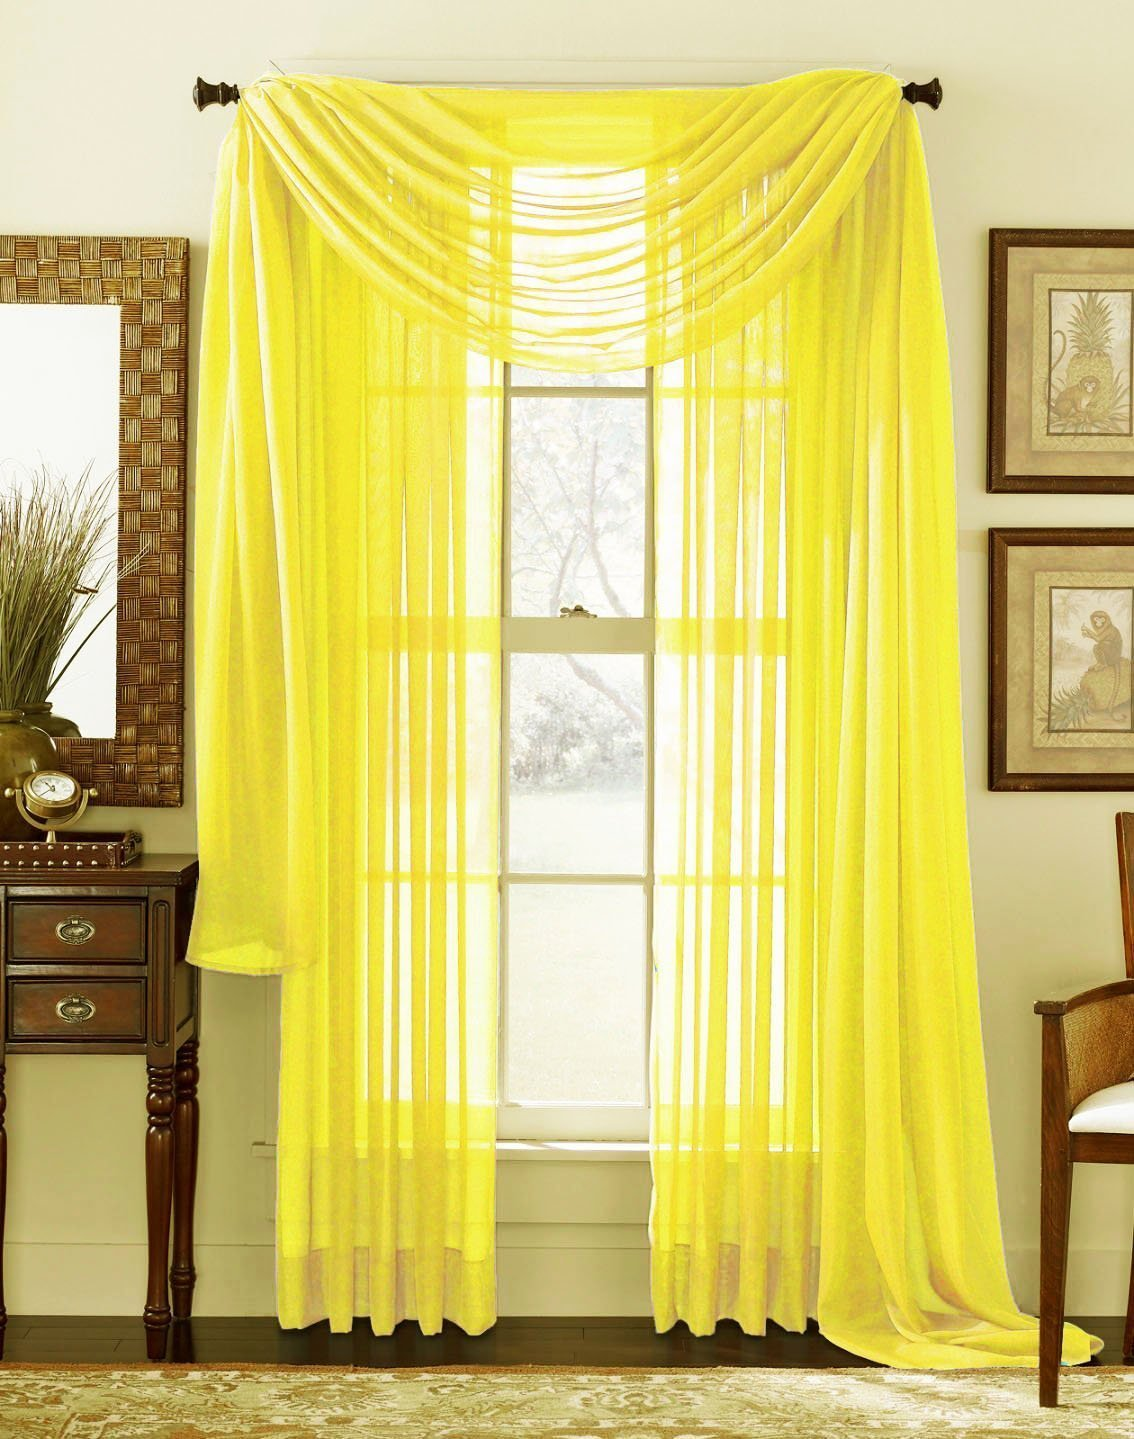 3 piece bright yellow sheer voile curtain panel set 2 yellow panels and 1 scarf